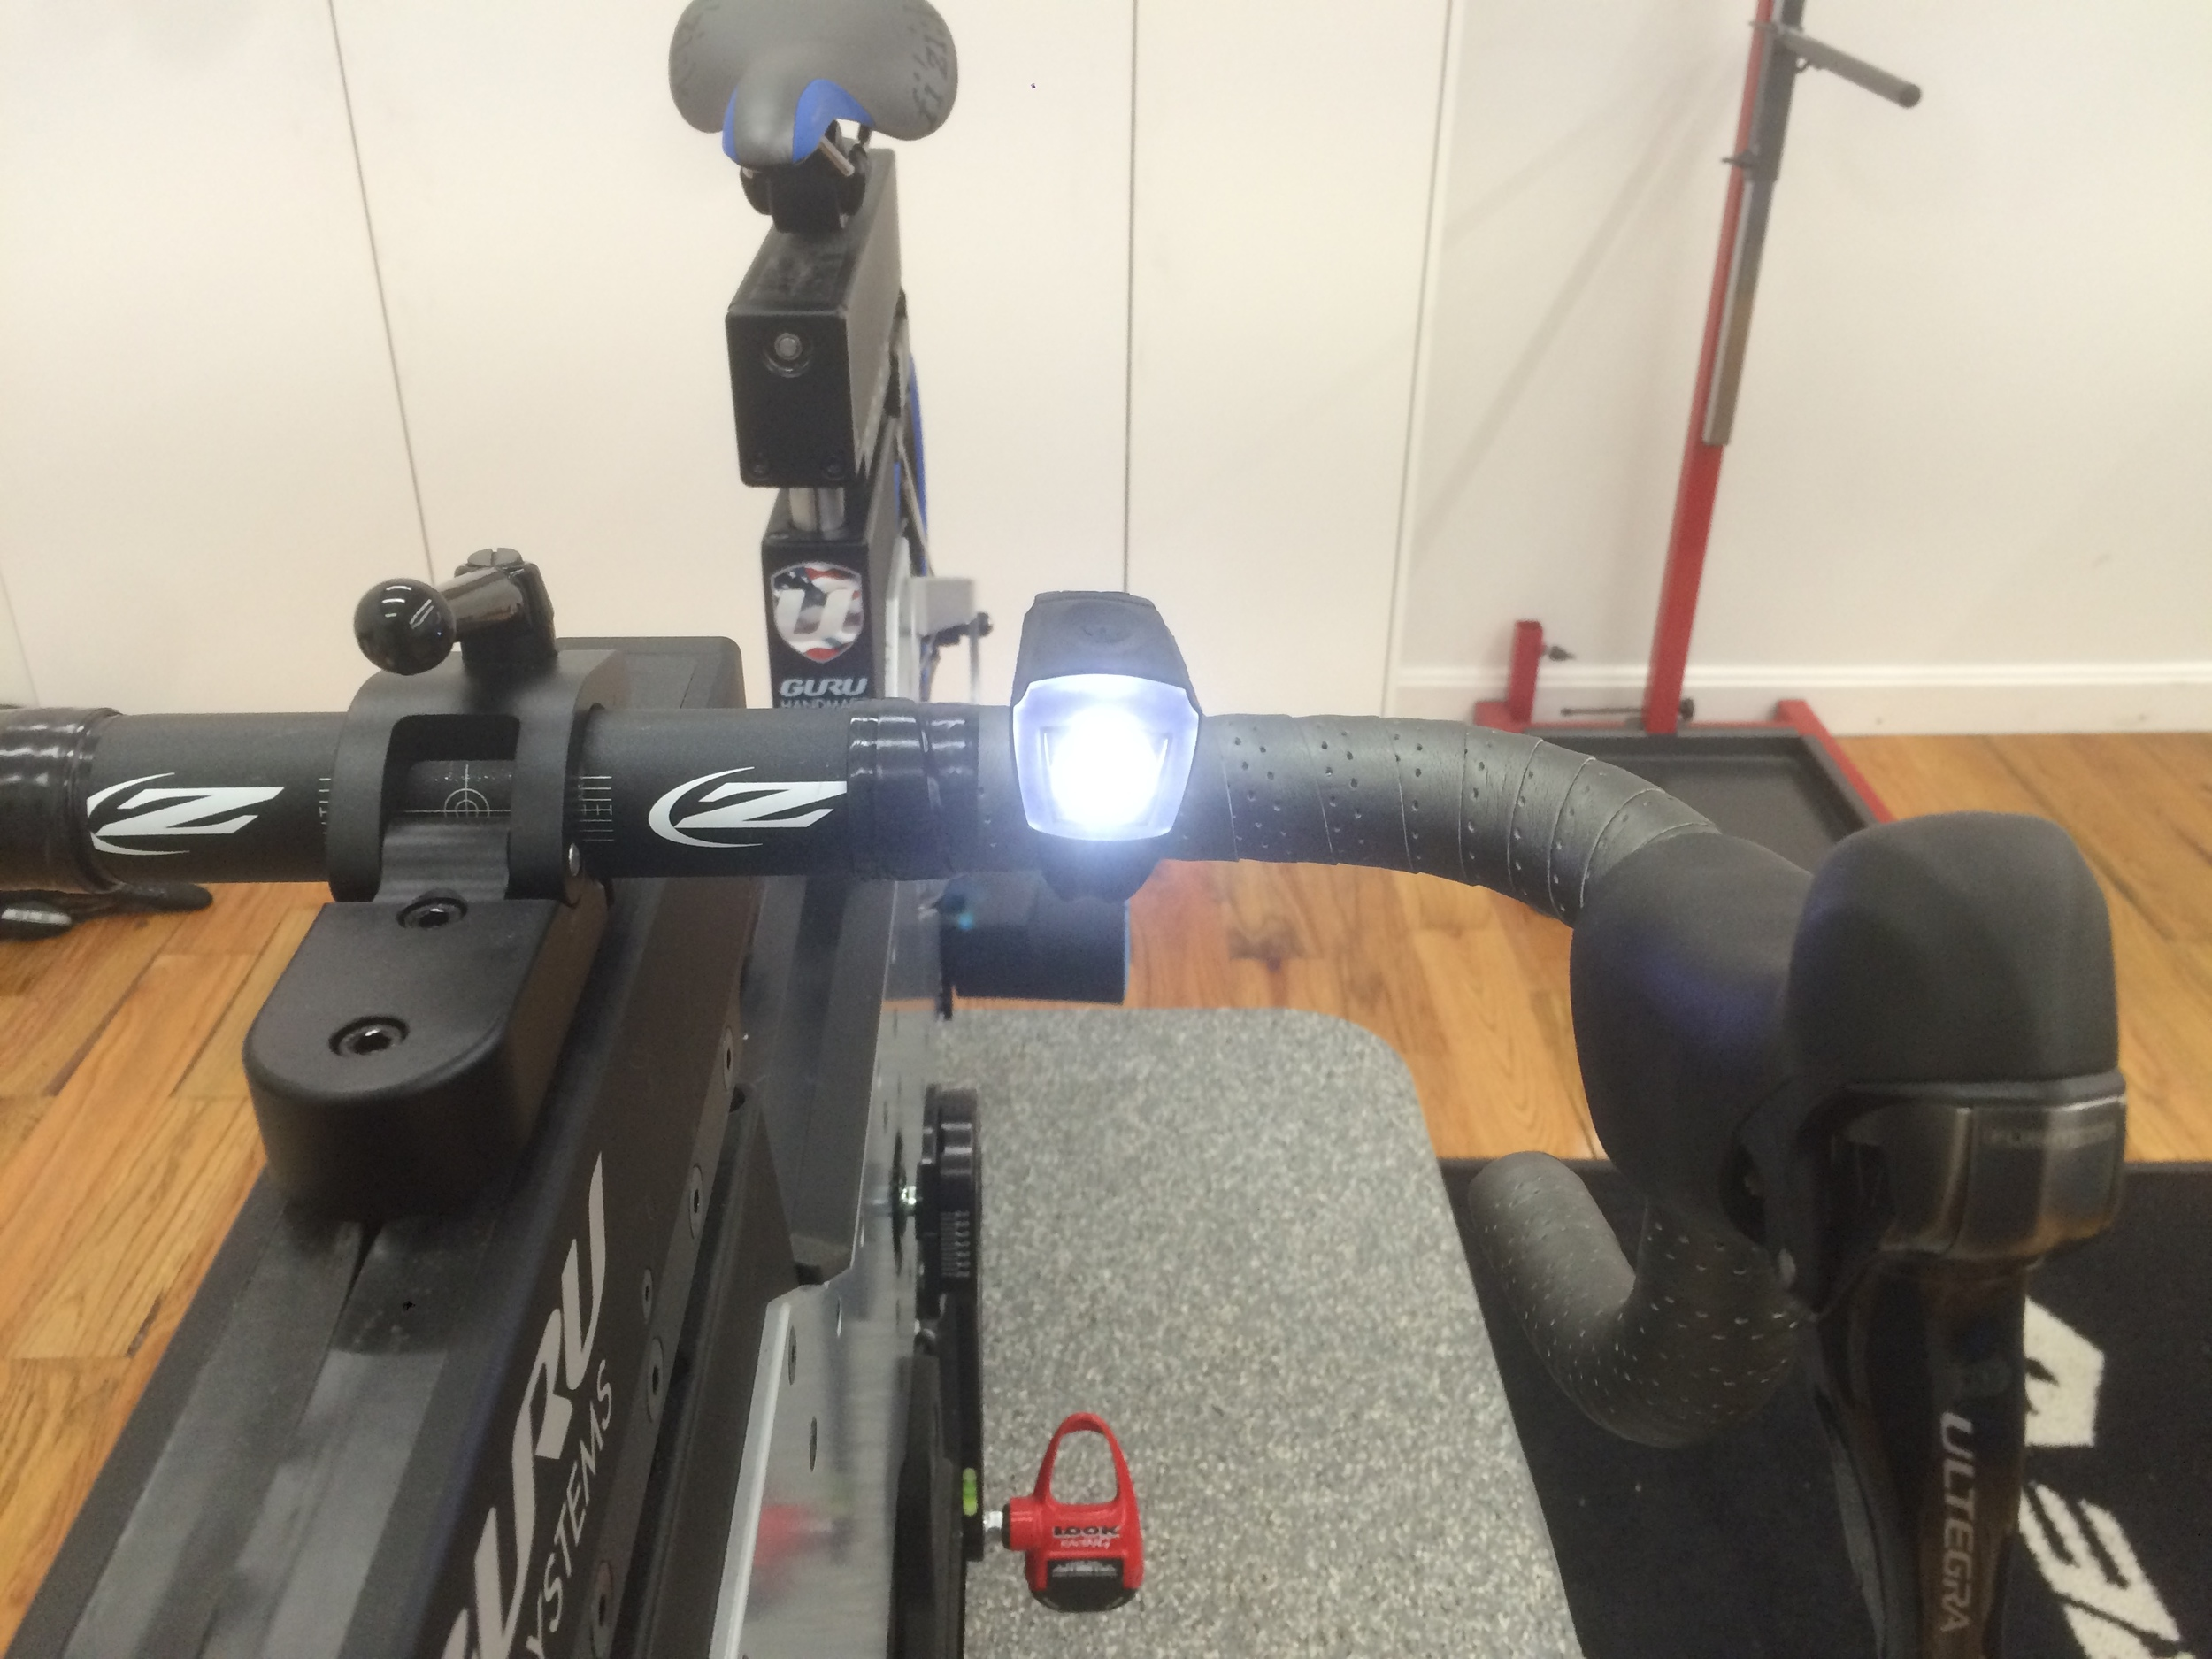 The Serfas Silicone Front Light is a good first light for kids.